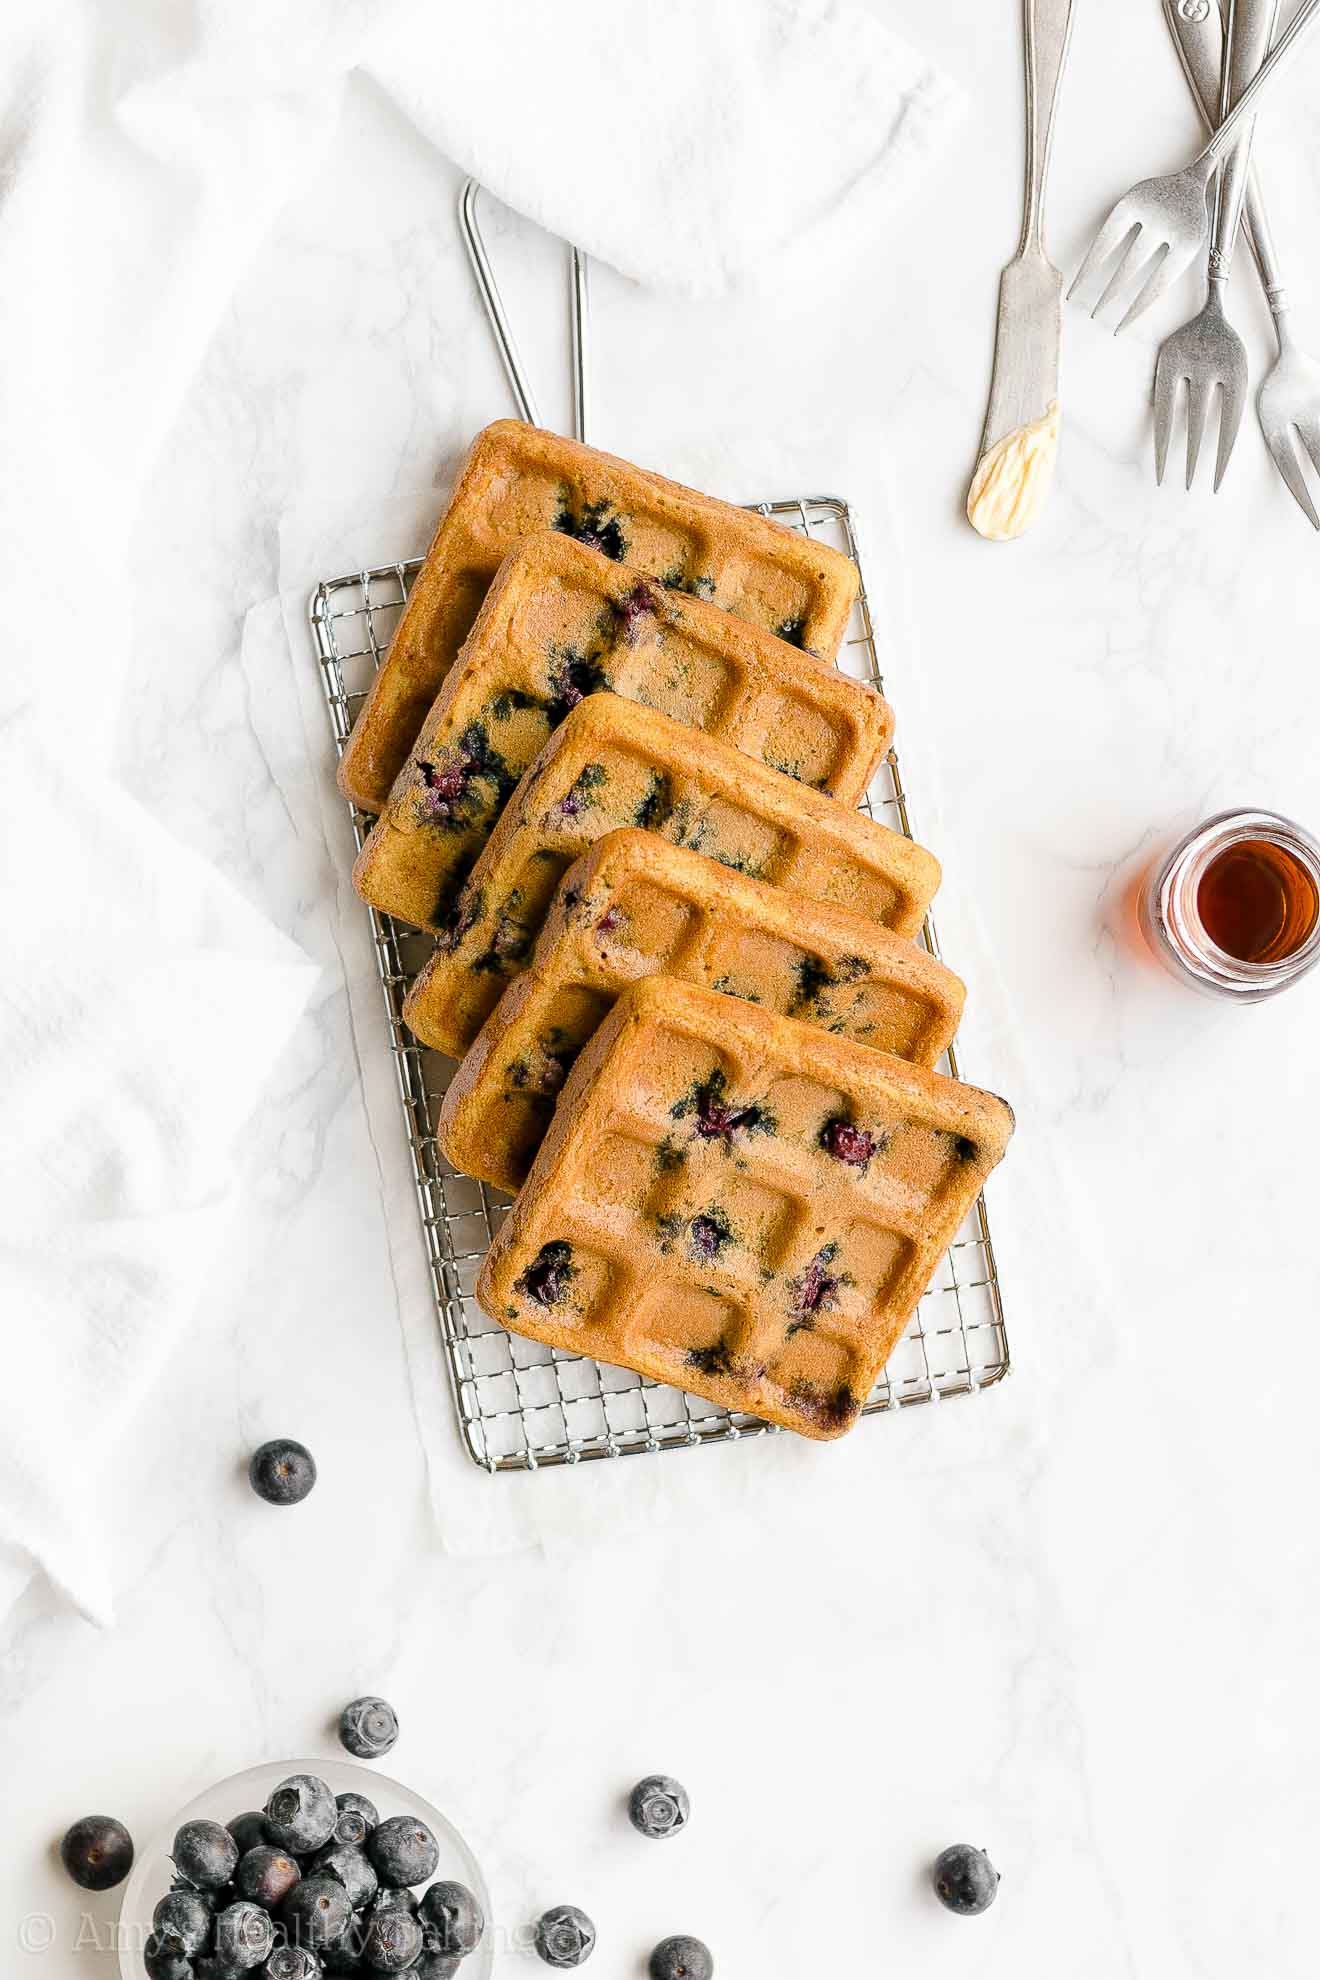 Easy Healthy Homemade Whole Wheat Low Sugar Blueberry Waffles